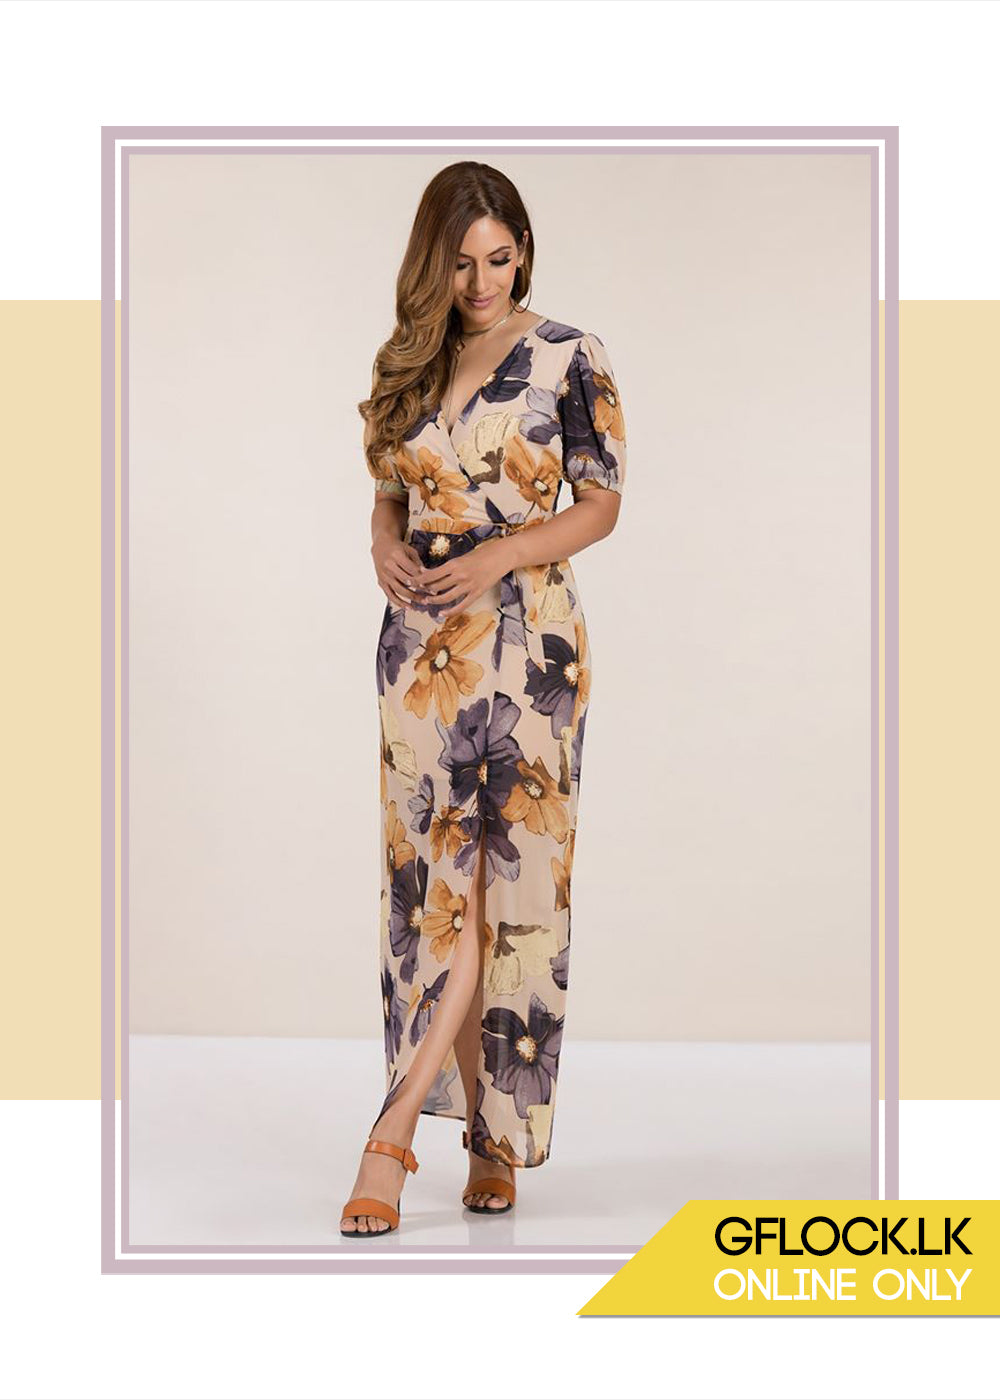 Printed Wrap Dress - GFLOCK.LK